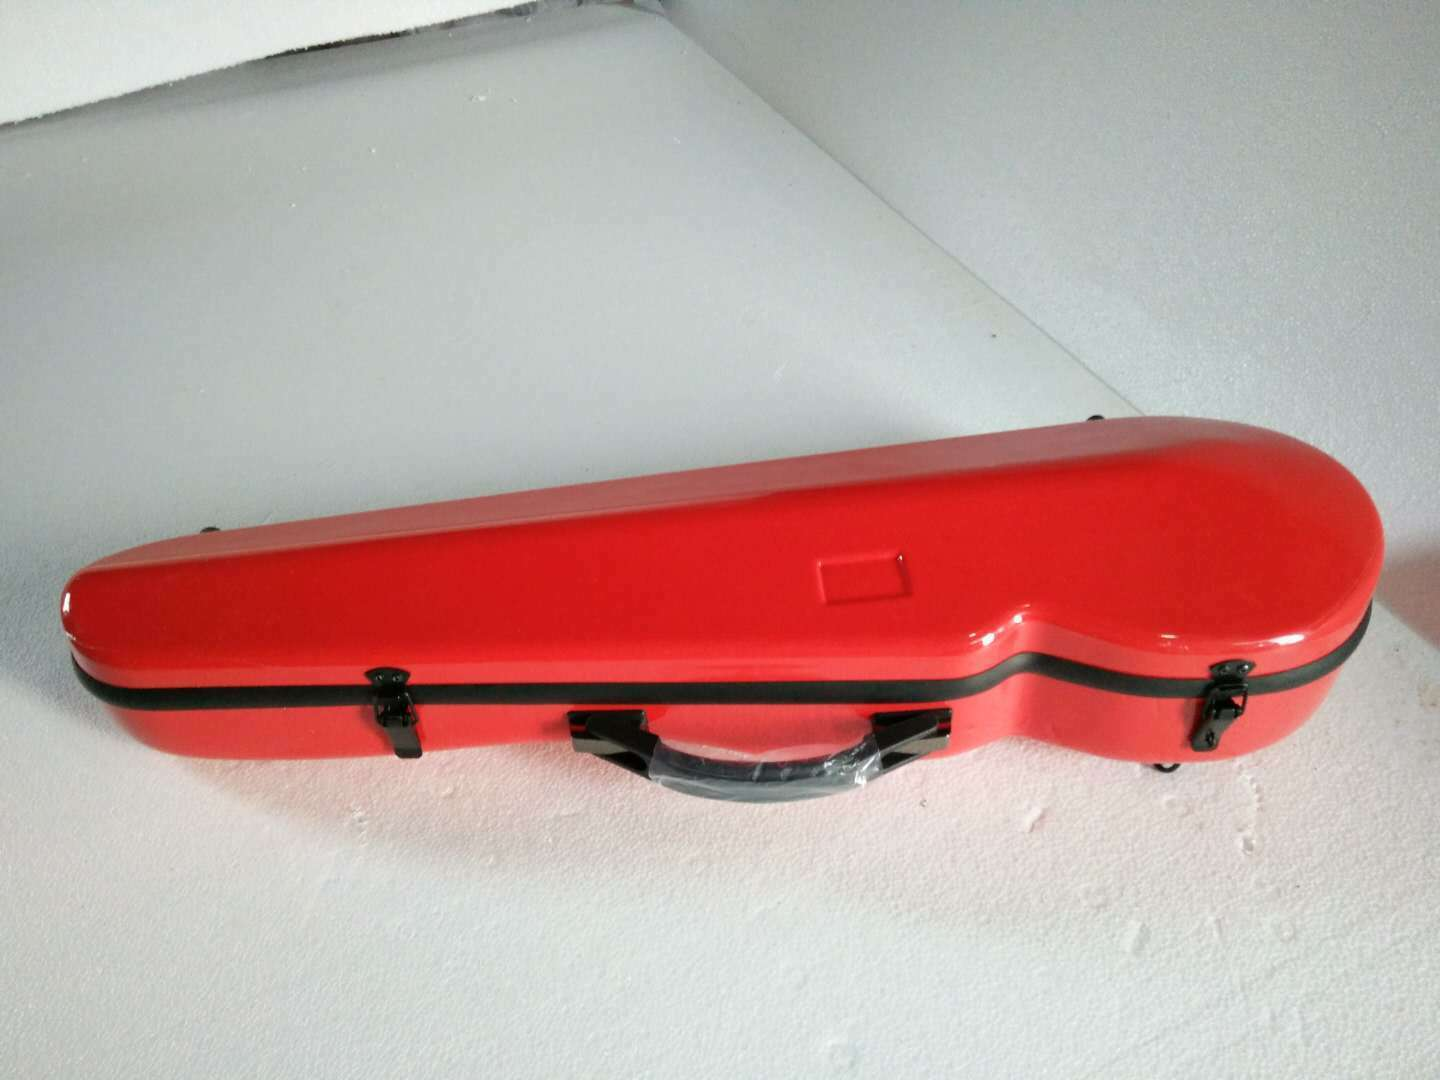 New violin case 4 4 full size Camber model composite material strong